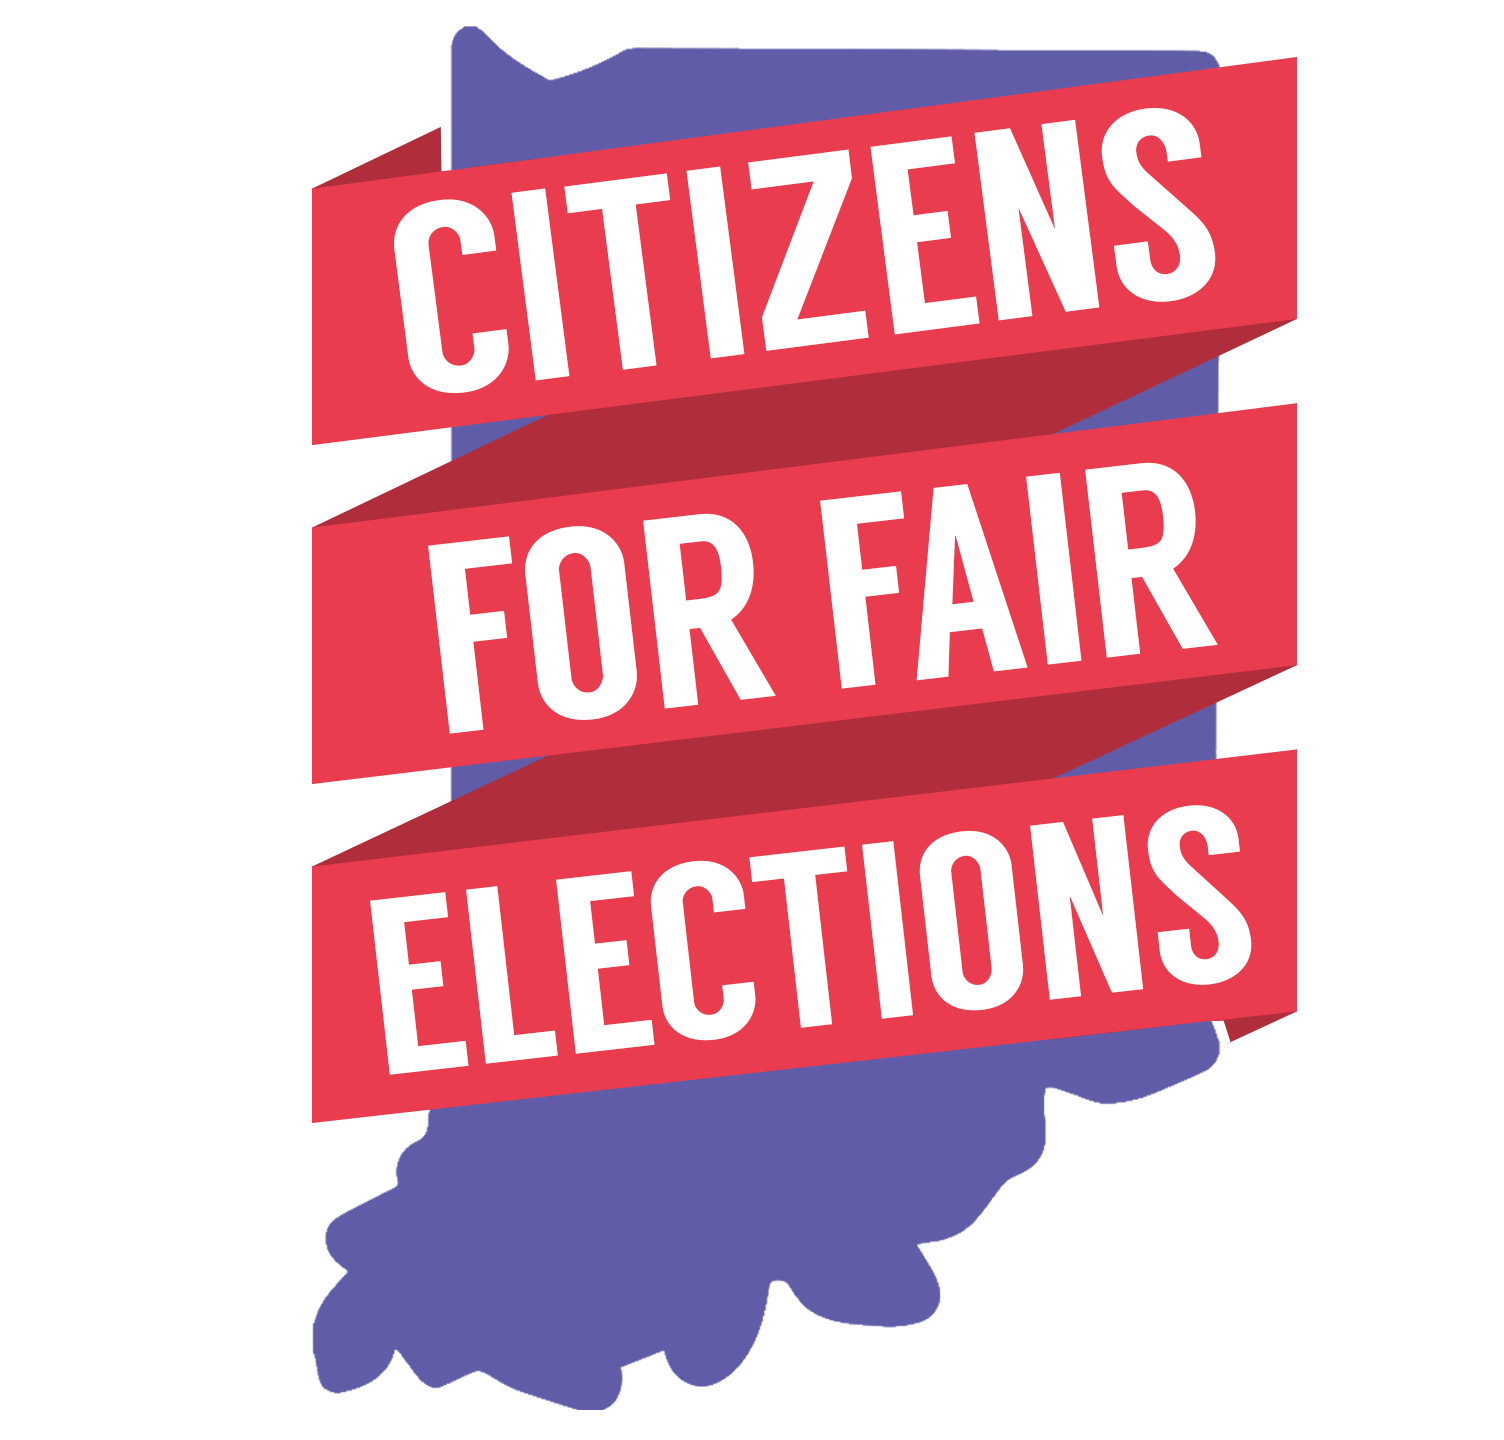 Citizens for Fair Elections